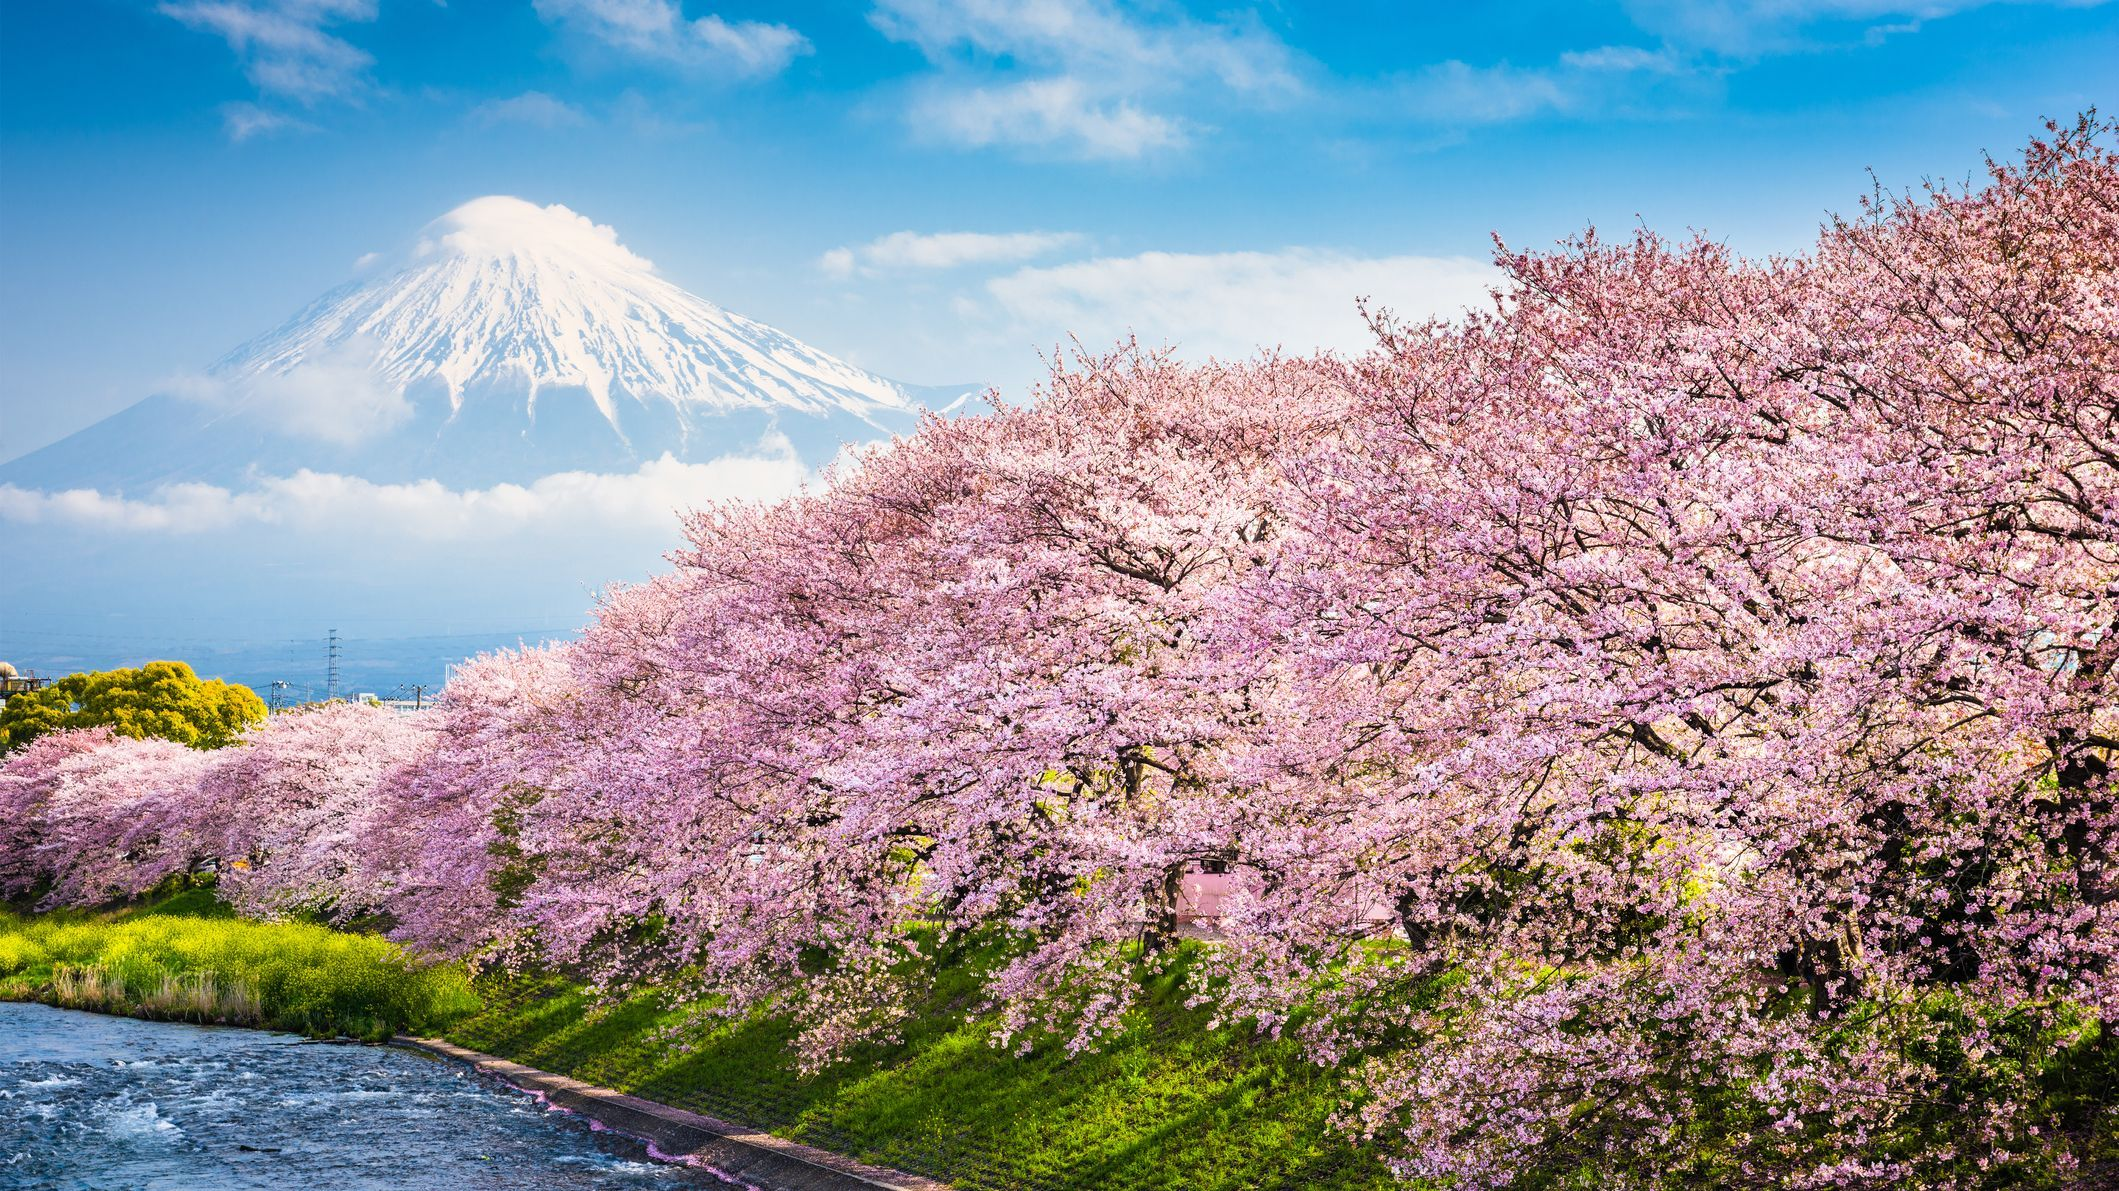 10 Amazing Facts About Cherry Blossoms Cherry Blossom Season Japan Travel Cherry Blossom Japan